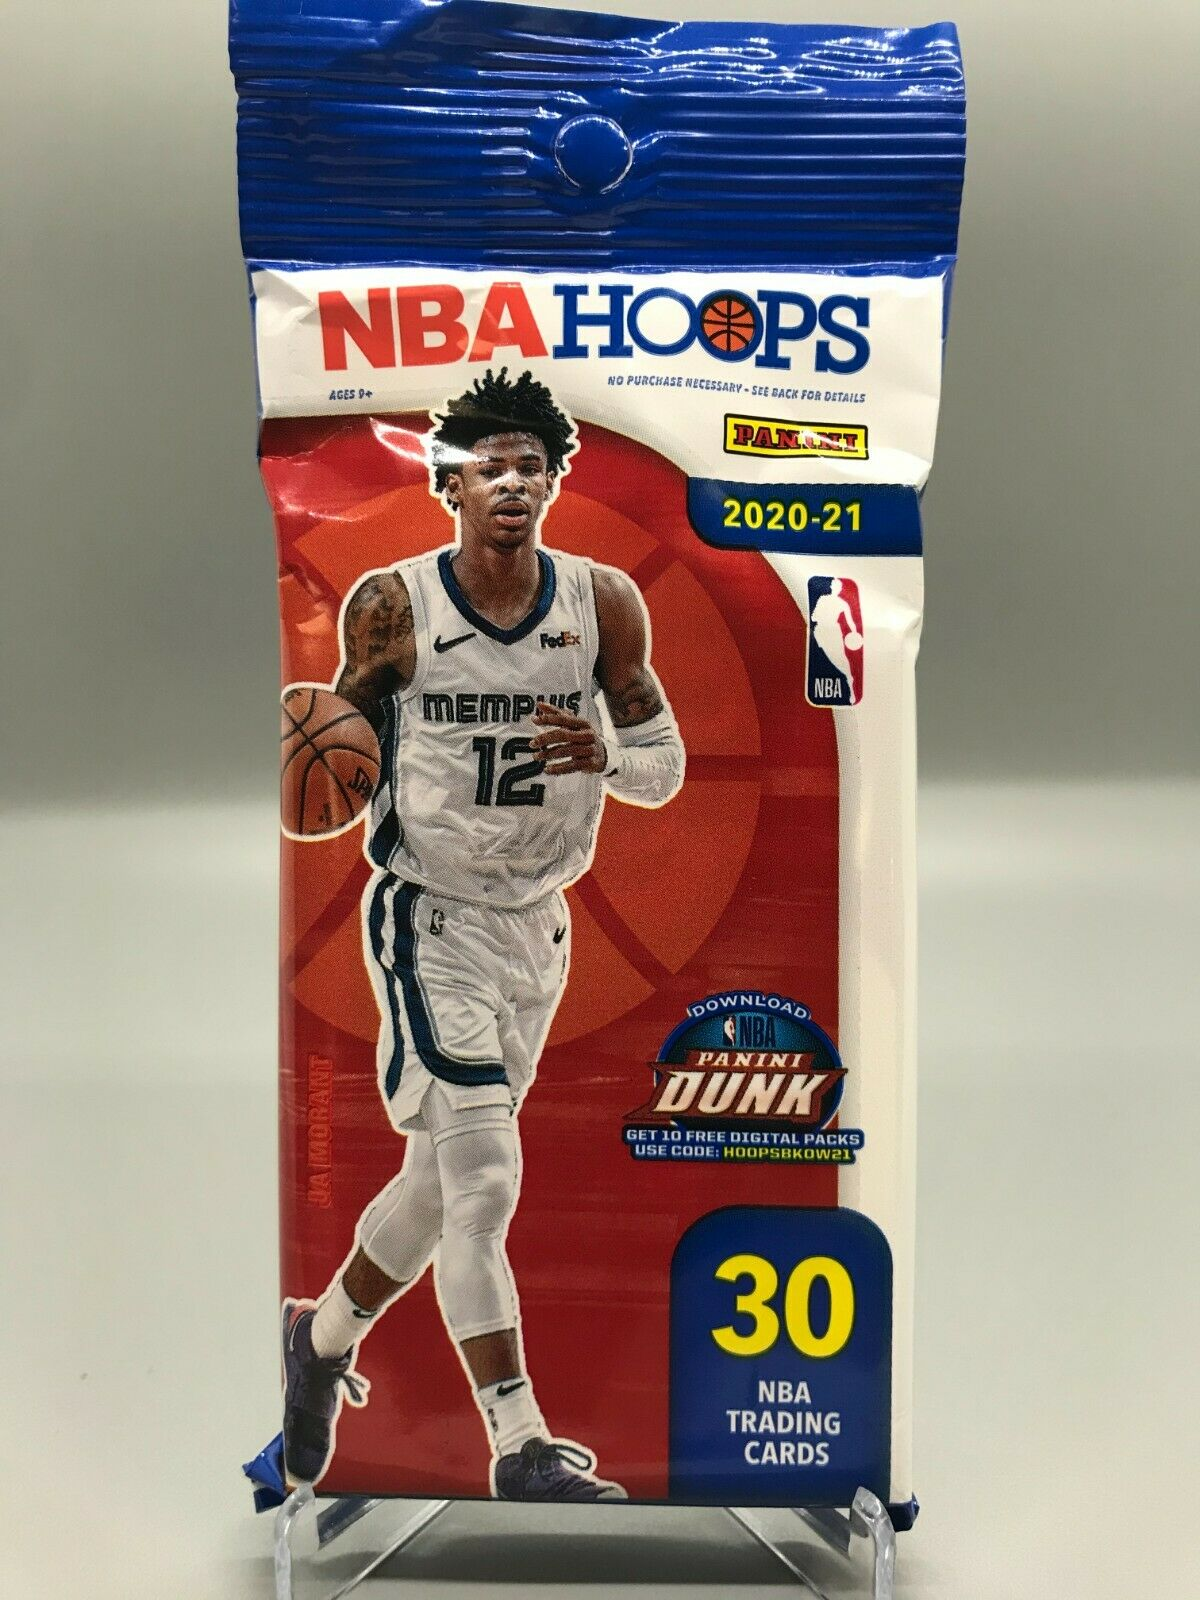 2020-2021 Panini NBA Hoops Cello Fat Pack - Culture source